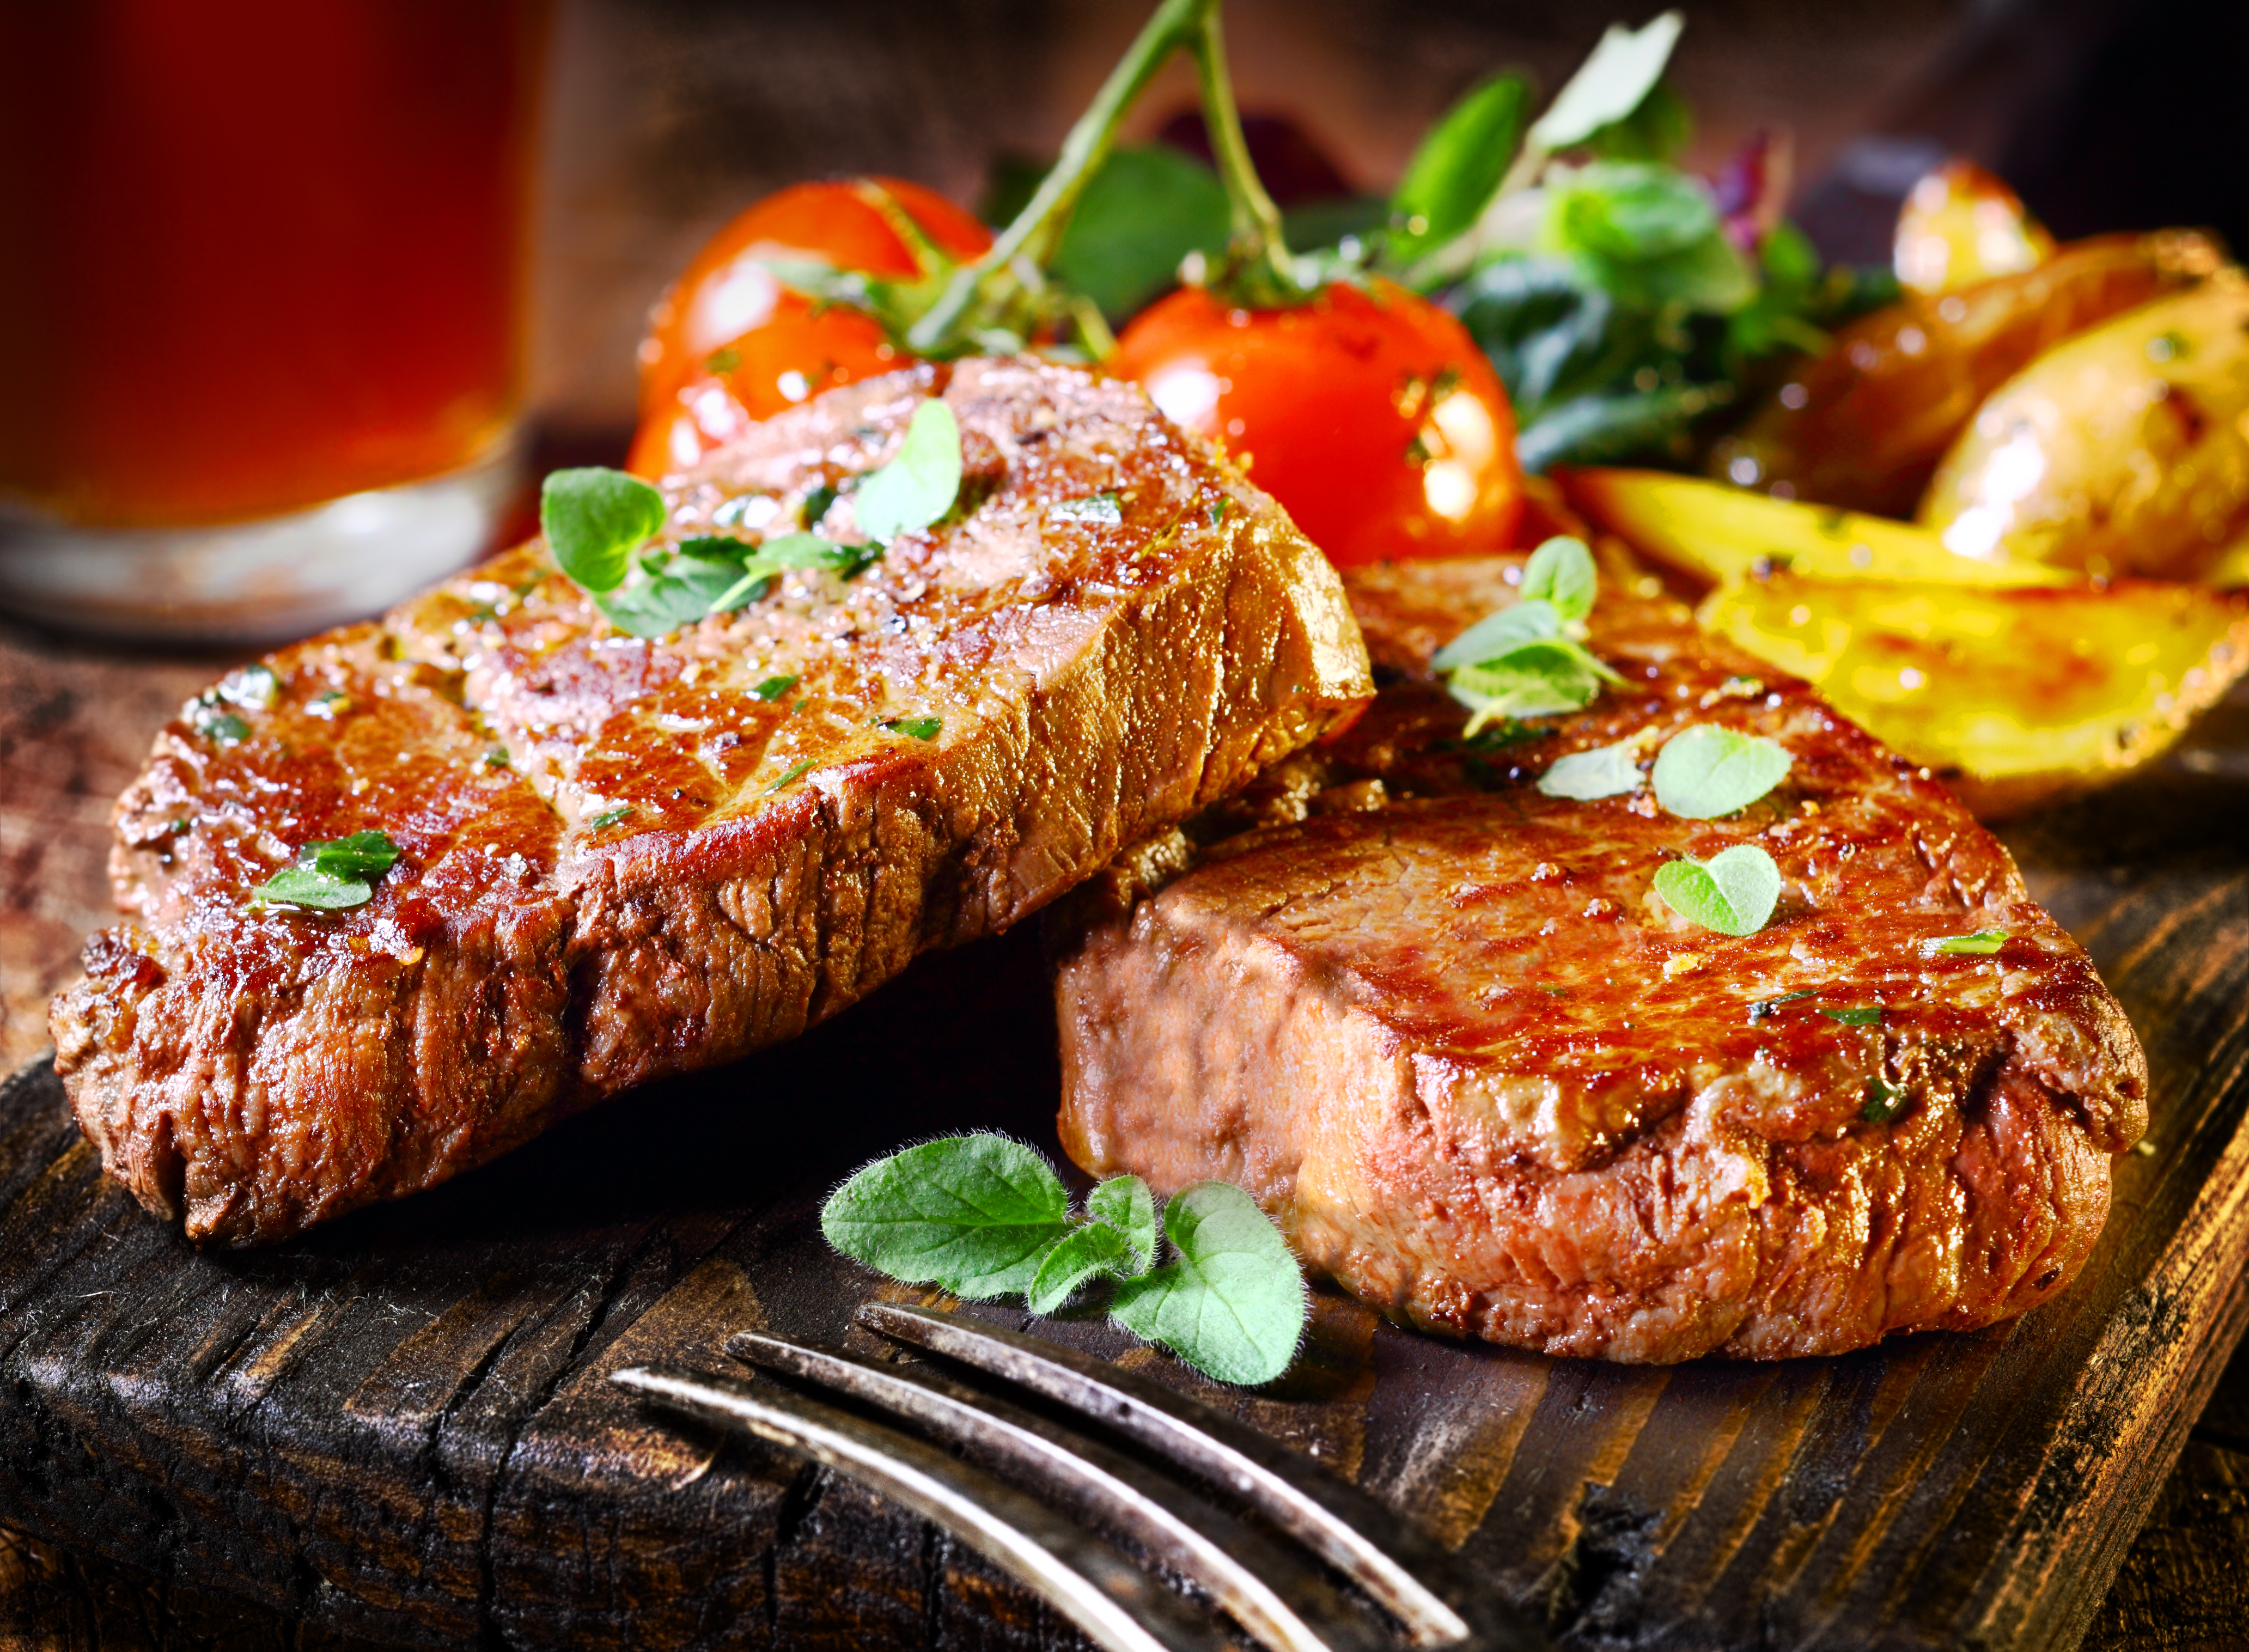 Steak served with roasted tomatoes and potatoes